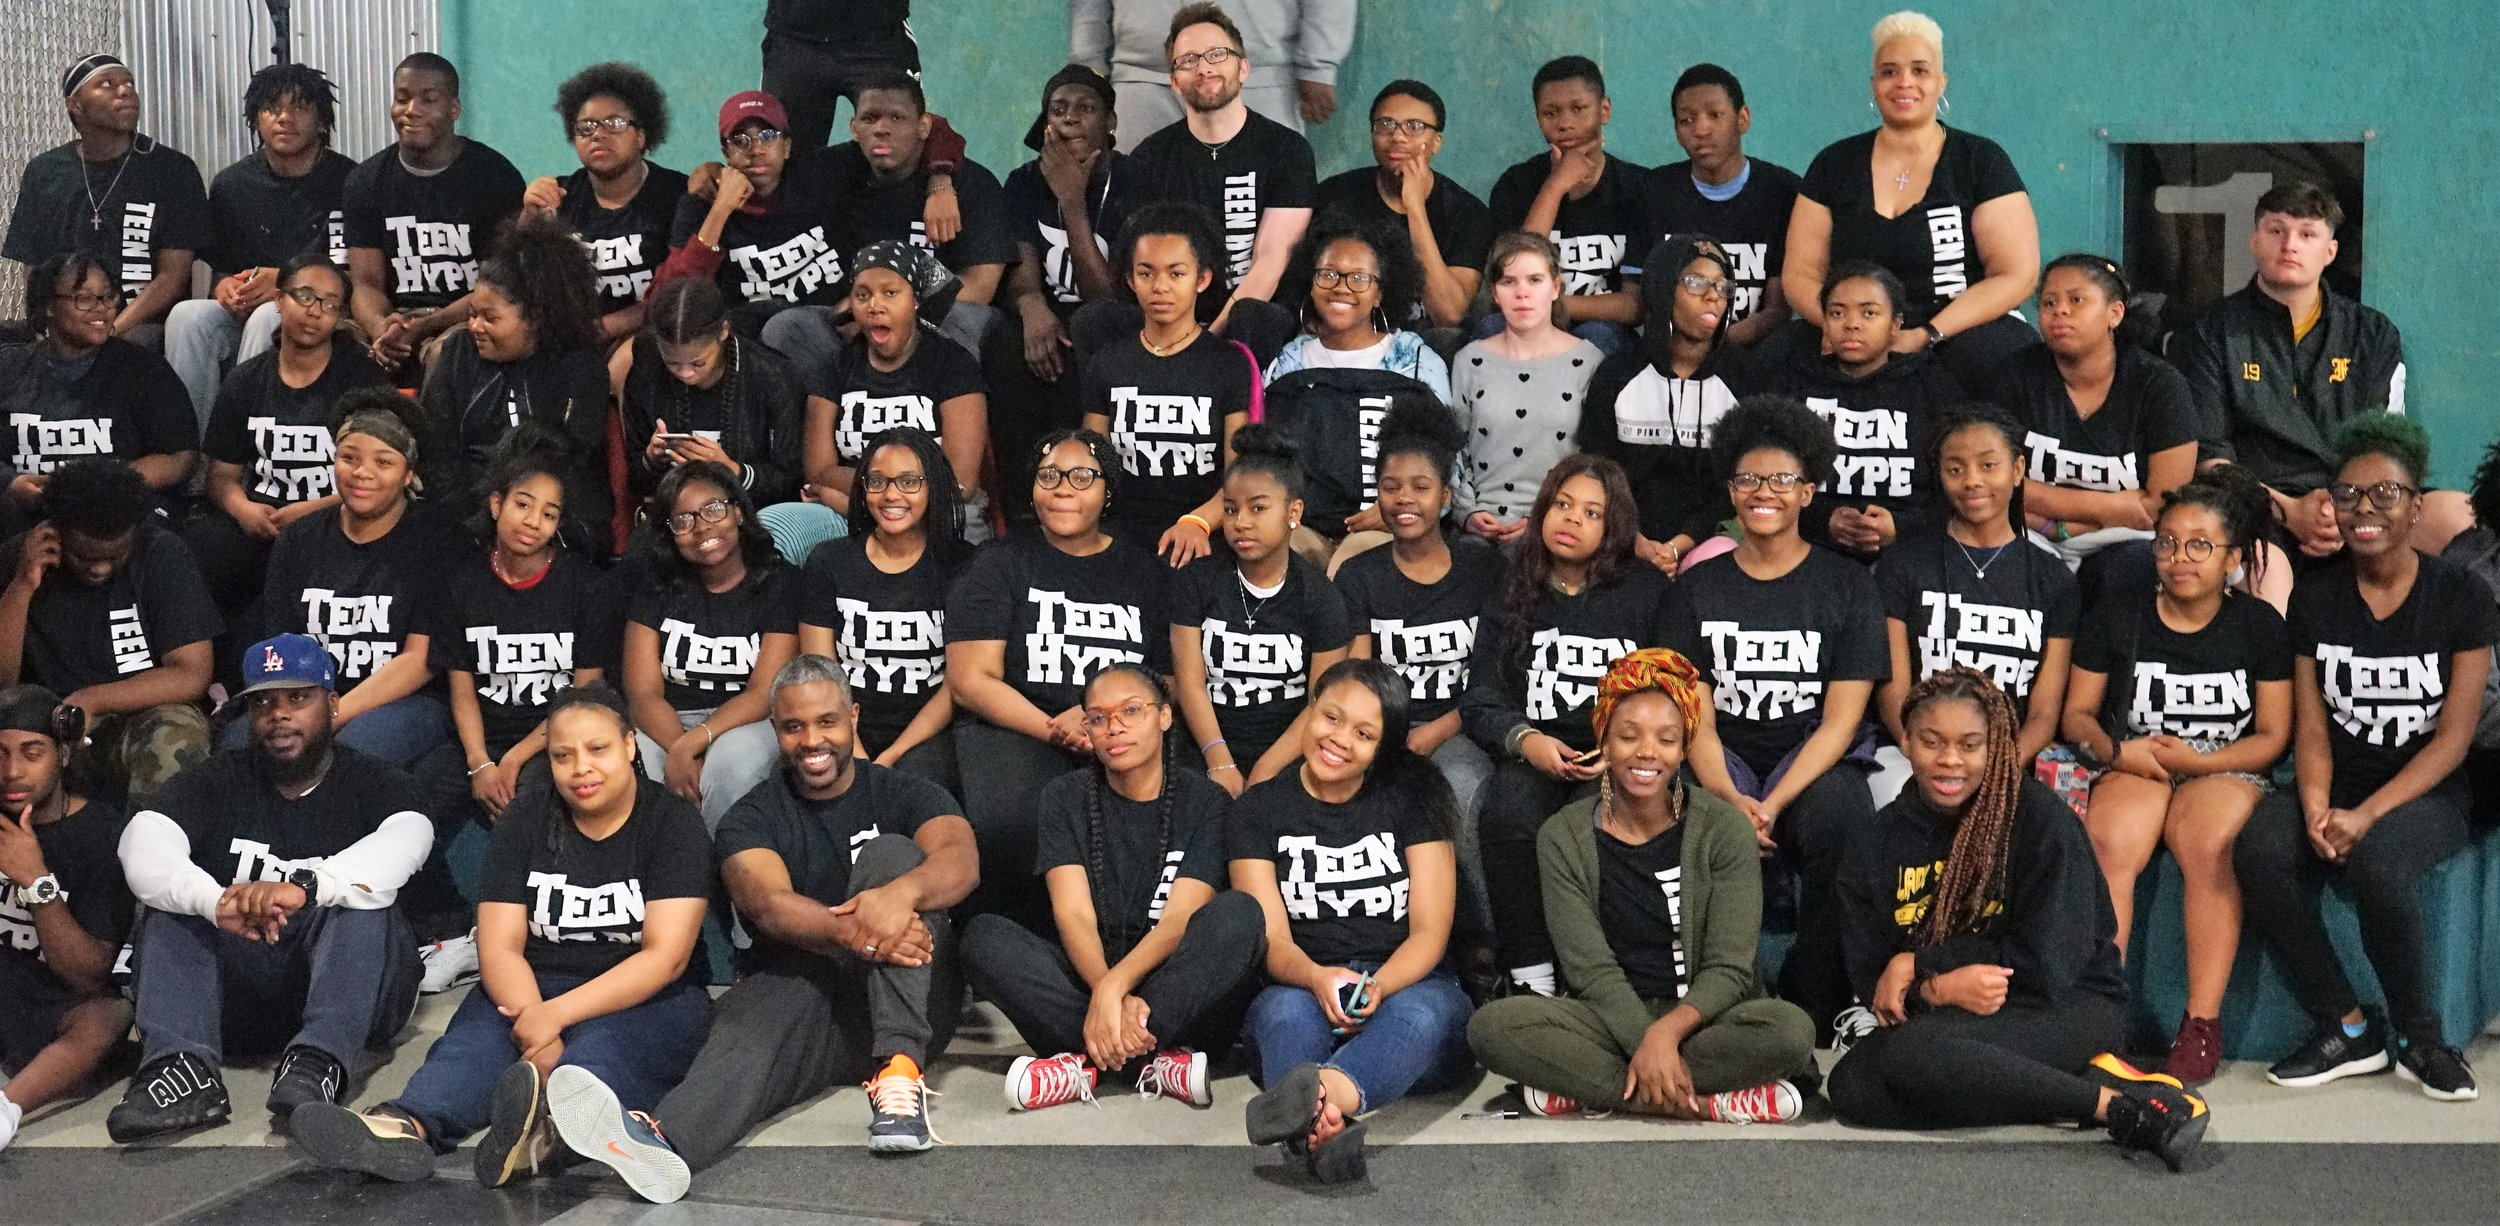 Group shot of 30 PEs in Teen HYPE shirts.jpg